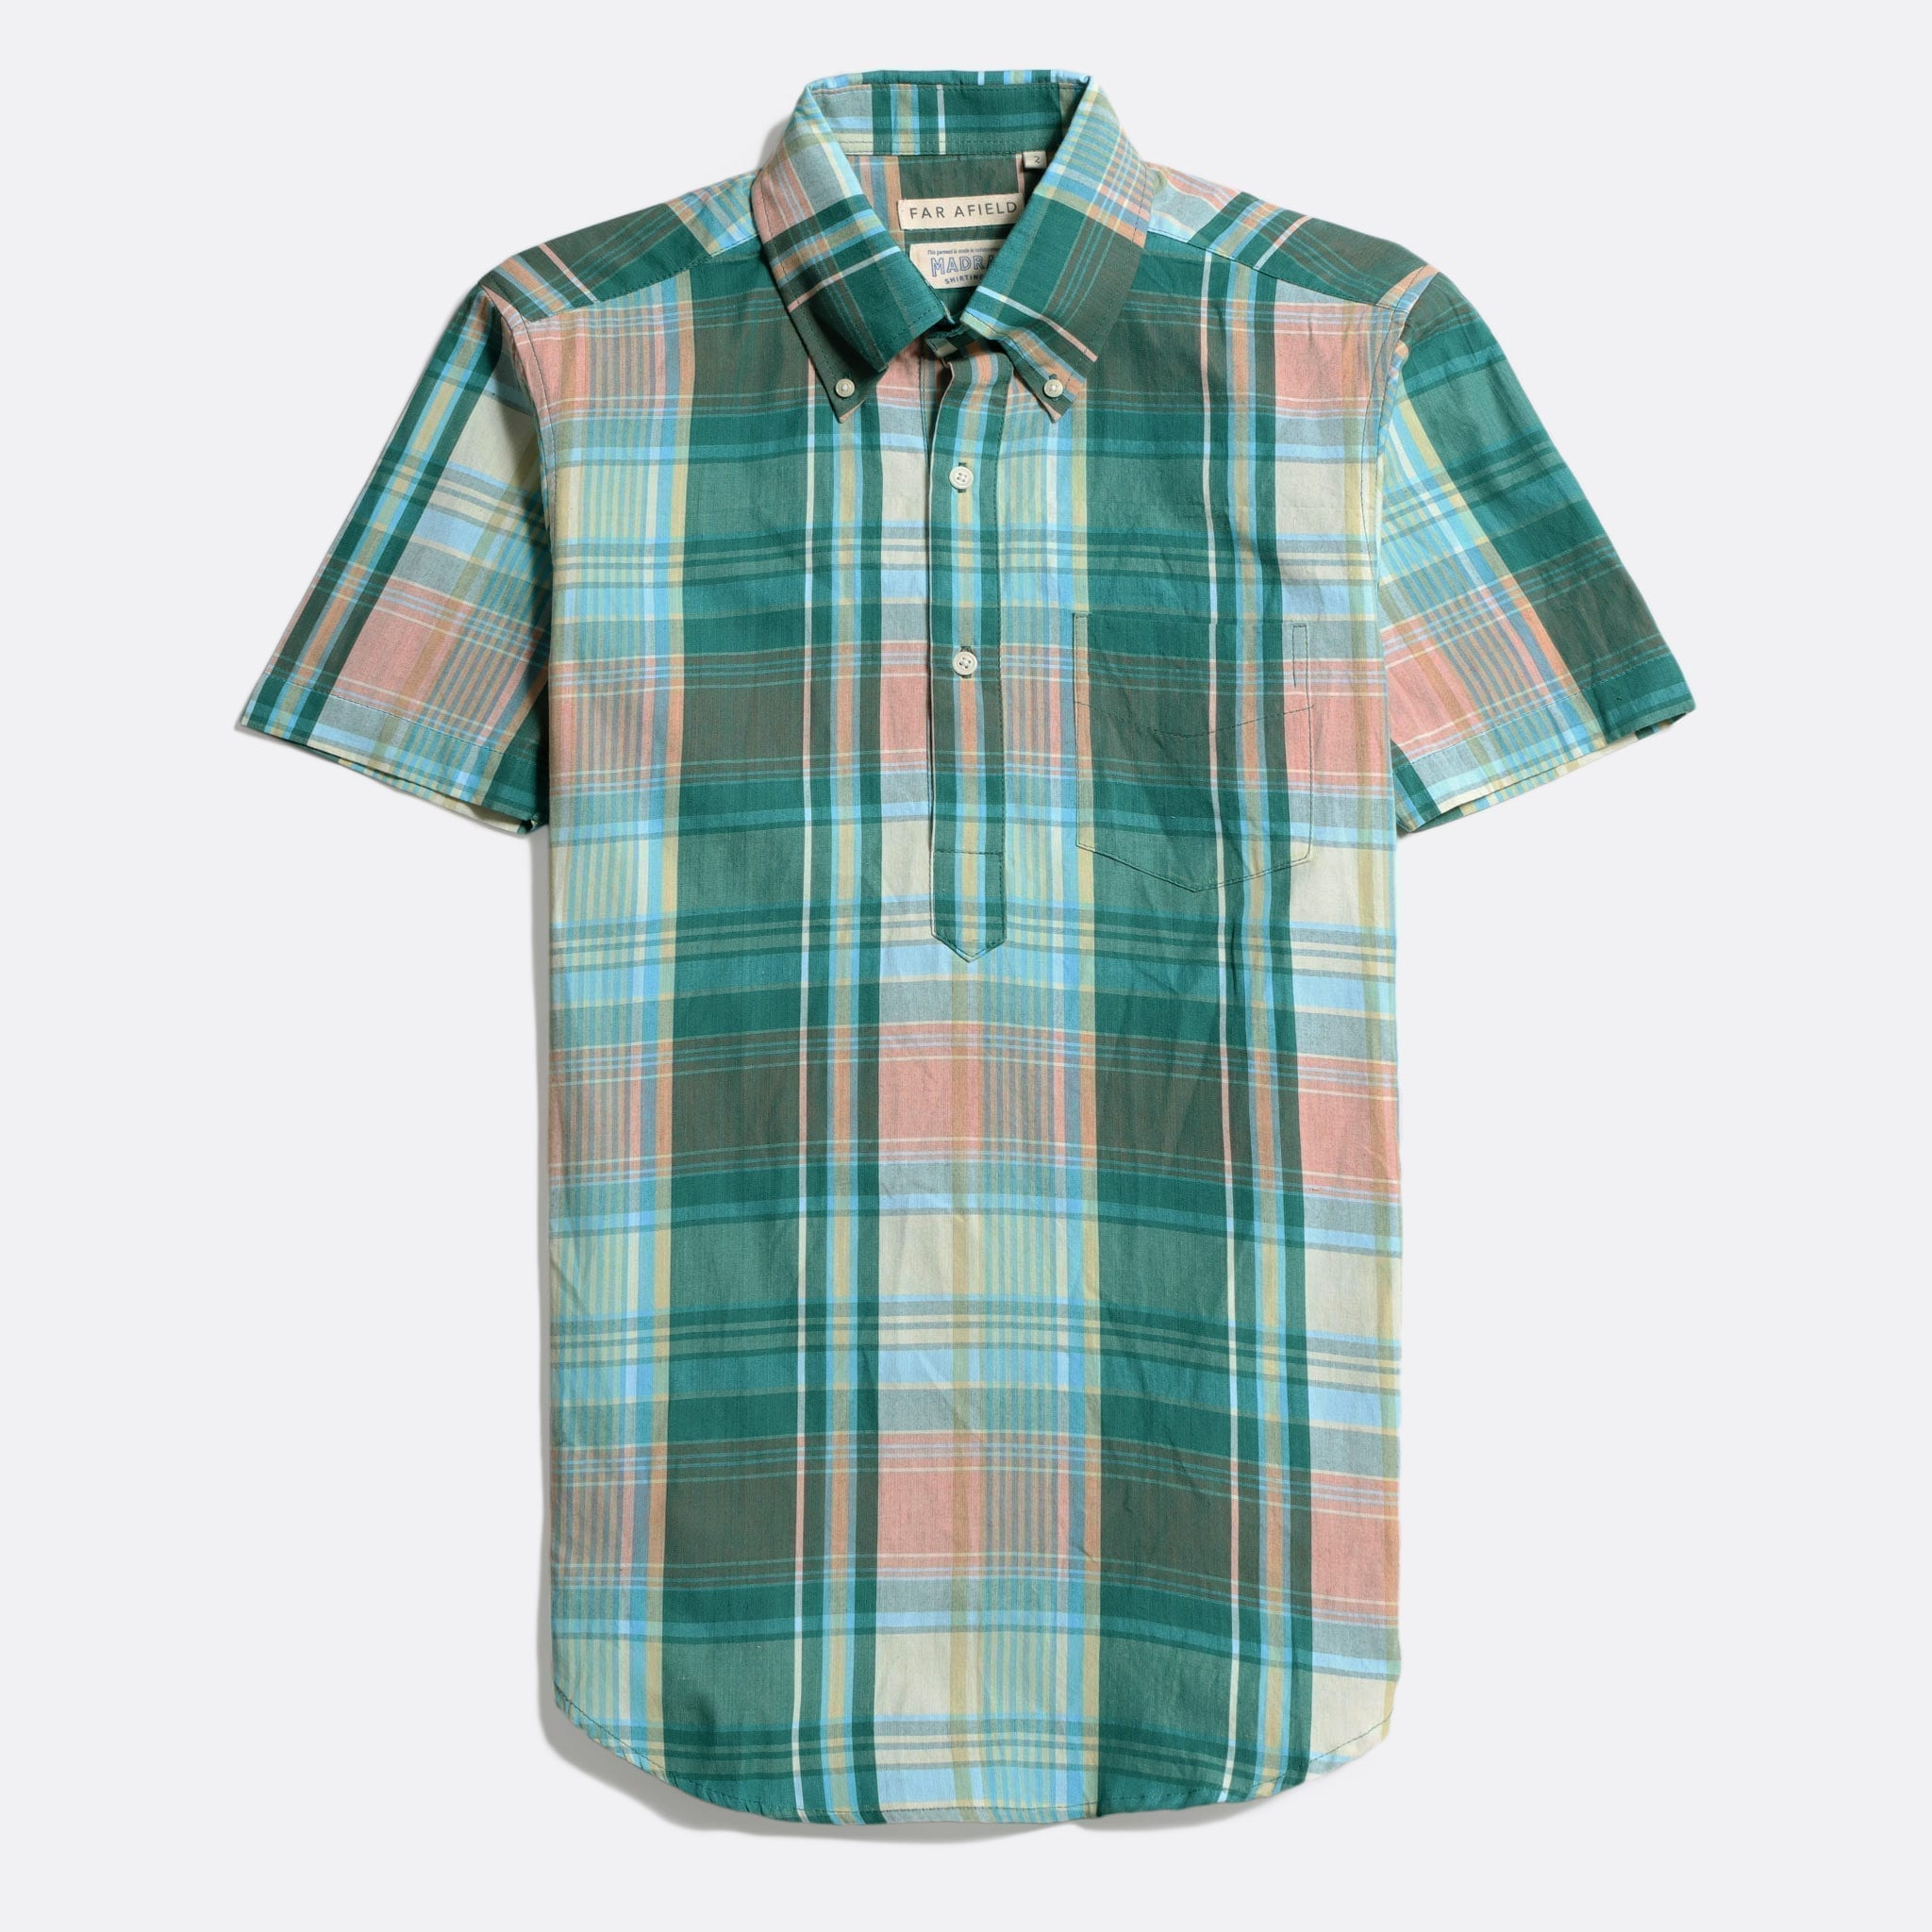 Far Afield x MSCo – Ivy Pop-Over Short Sleeve Shirt a Trestles Check BCI Cotton Fabric Mid Century Inspired